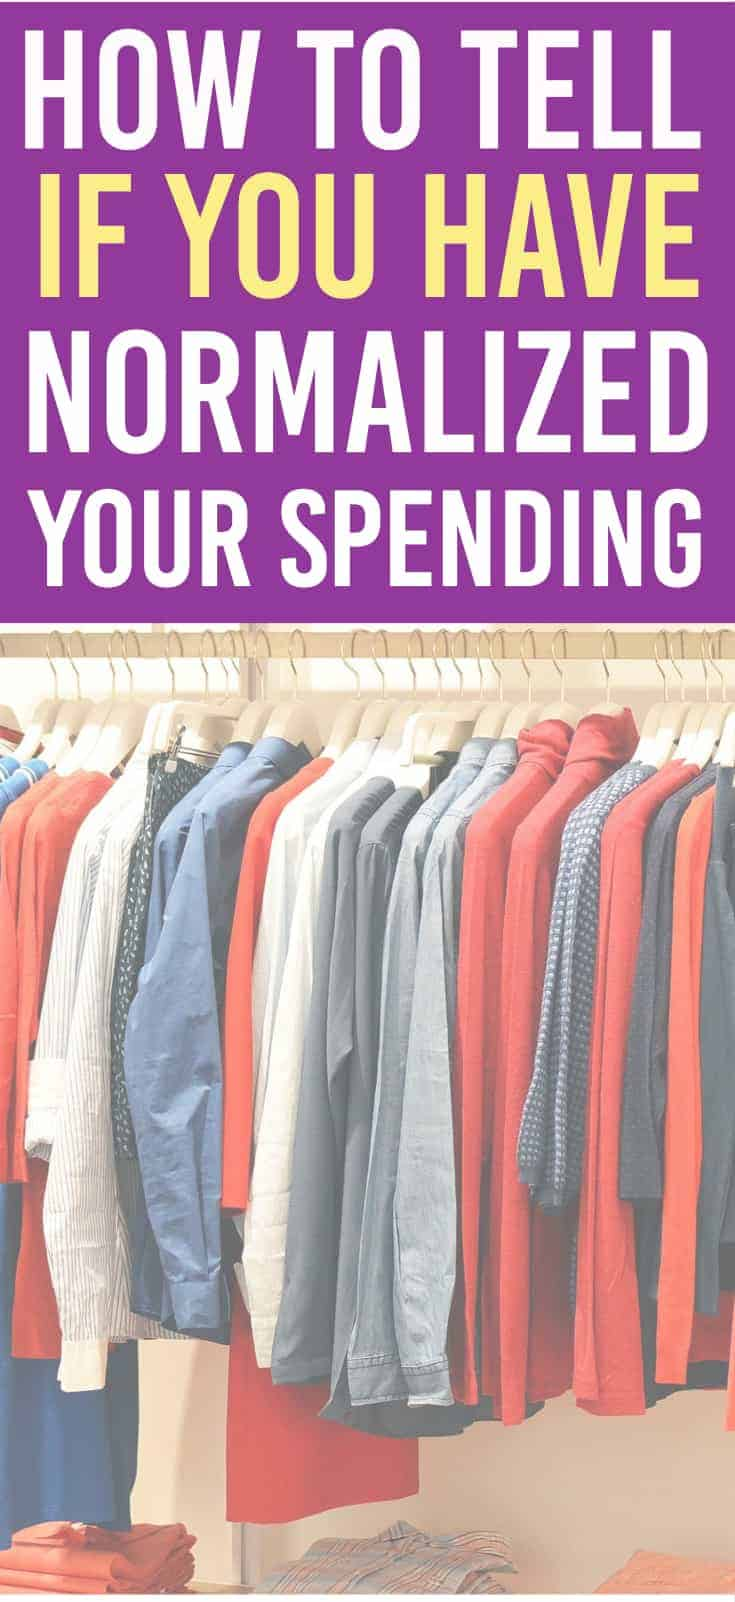 Normalized spending is that thing we all do and it damages our finances without us knowing. Here is how to see how you normalized your spending and how to fix this to become amazing with your finances.